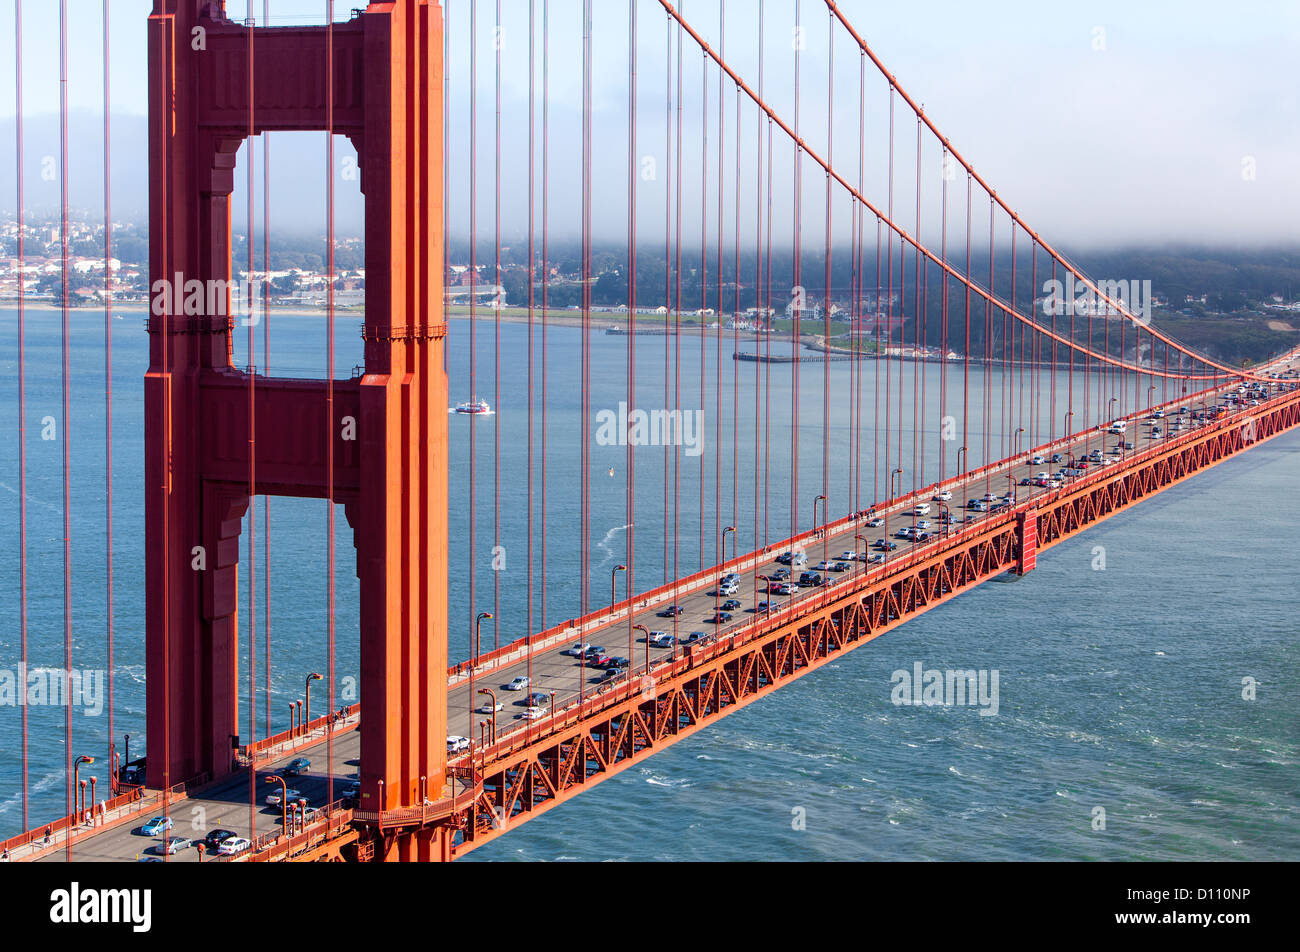 The San Francisco Golden Gate Bridge Pedestrians Walking Across The Bridge Cars Driving Across And Boats Sailing In The Bay Stock Photo Alamy